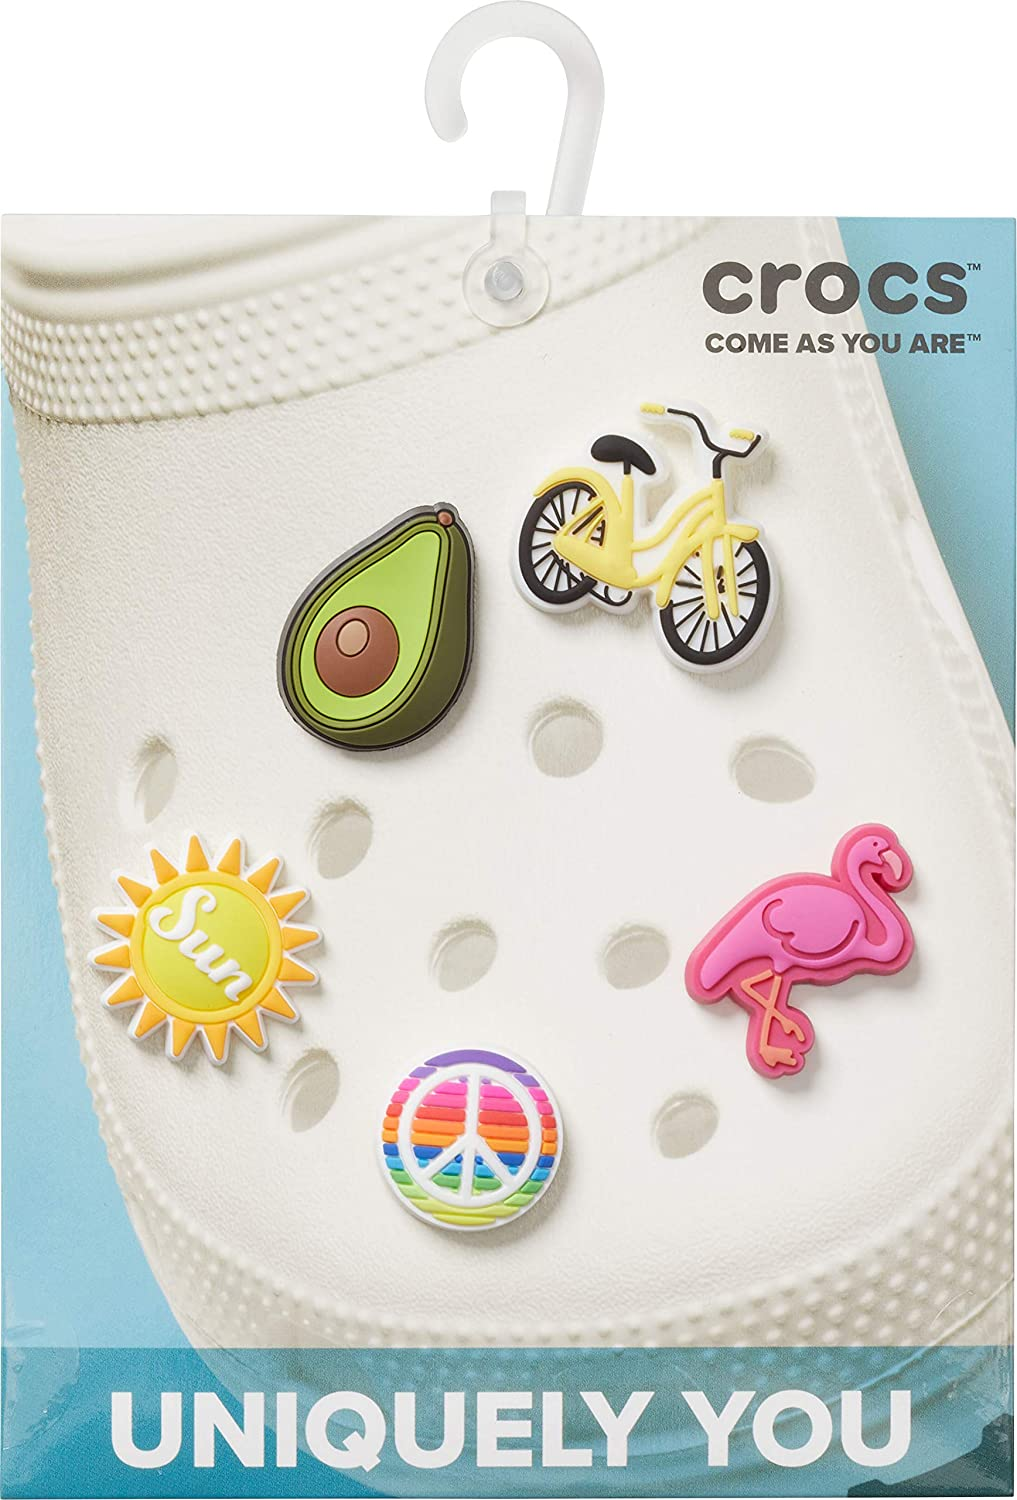 Jibbitz Shoe Charm 5-Pack | Personalize with Jibbitz for Crocs